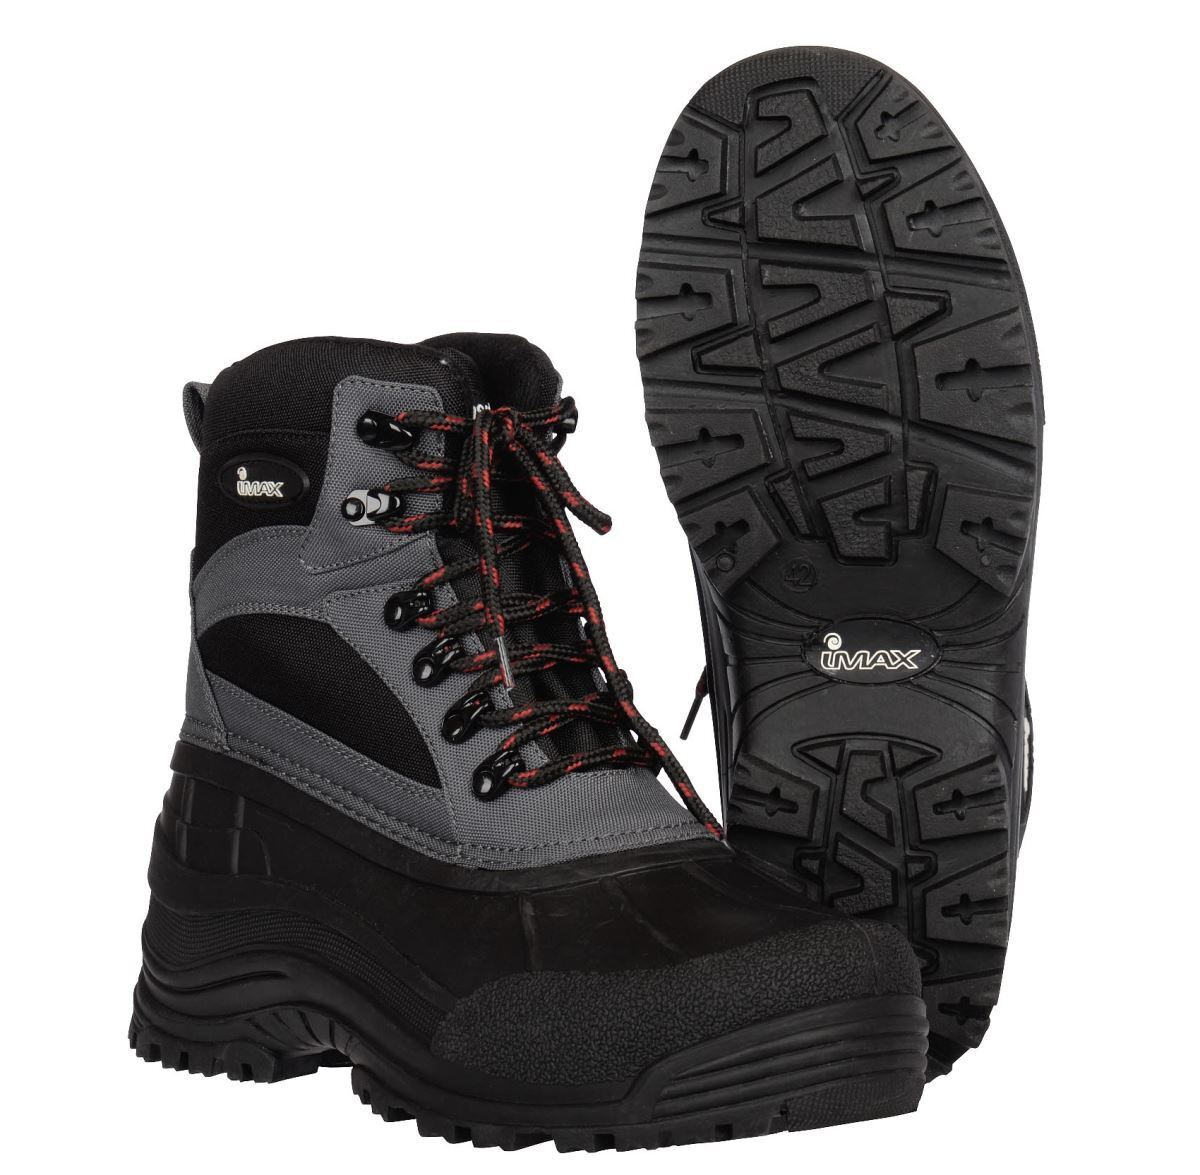 IMAX   SEA BOOT   WADING BOOT  save up to 80%